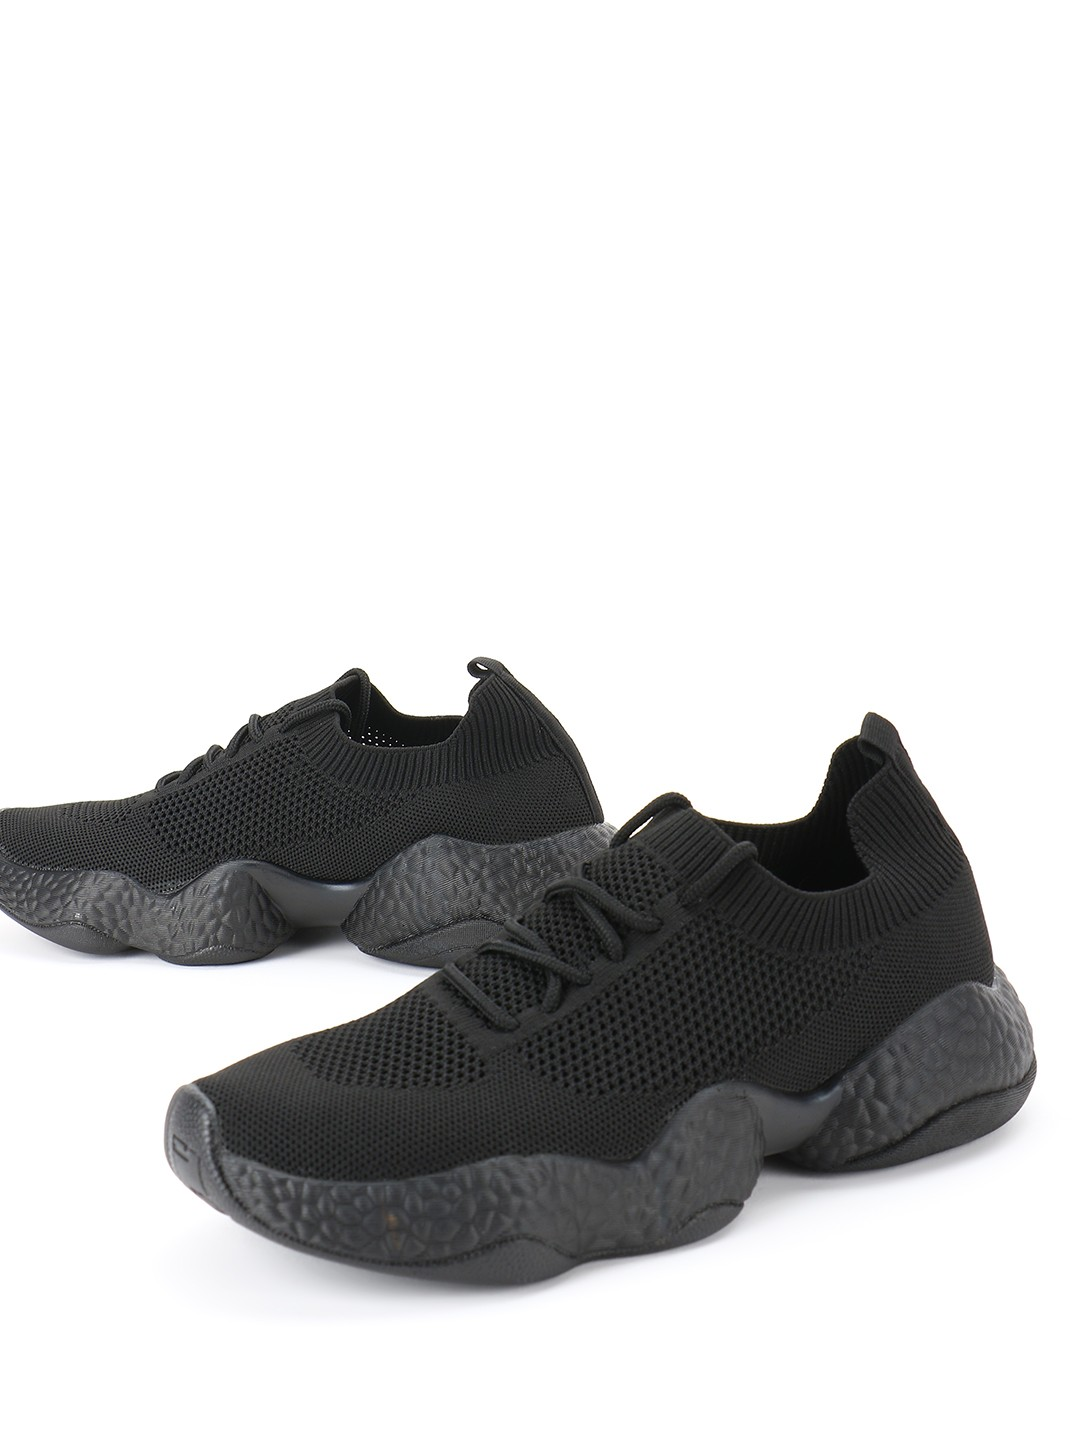 KOOVS Black Lace Up Flynet Trainers 1